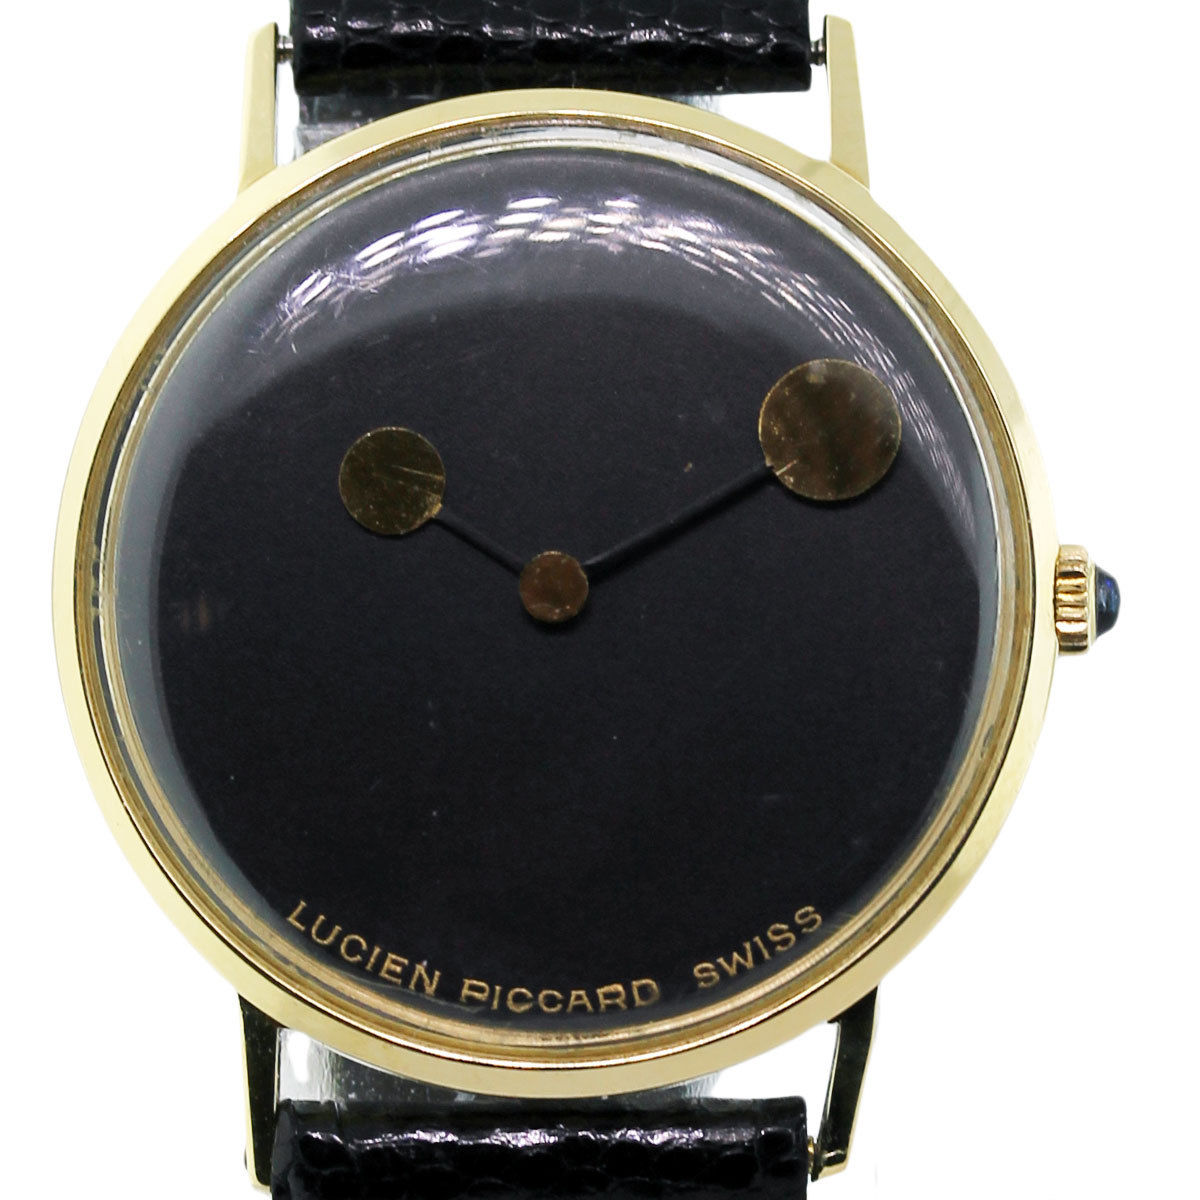 lucien piccard 14k gold vintage mens watch raymond lee jewelers lucien piccard 14k gold vintage mens watch